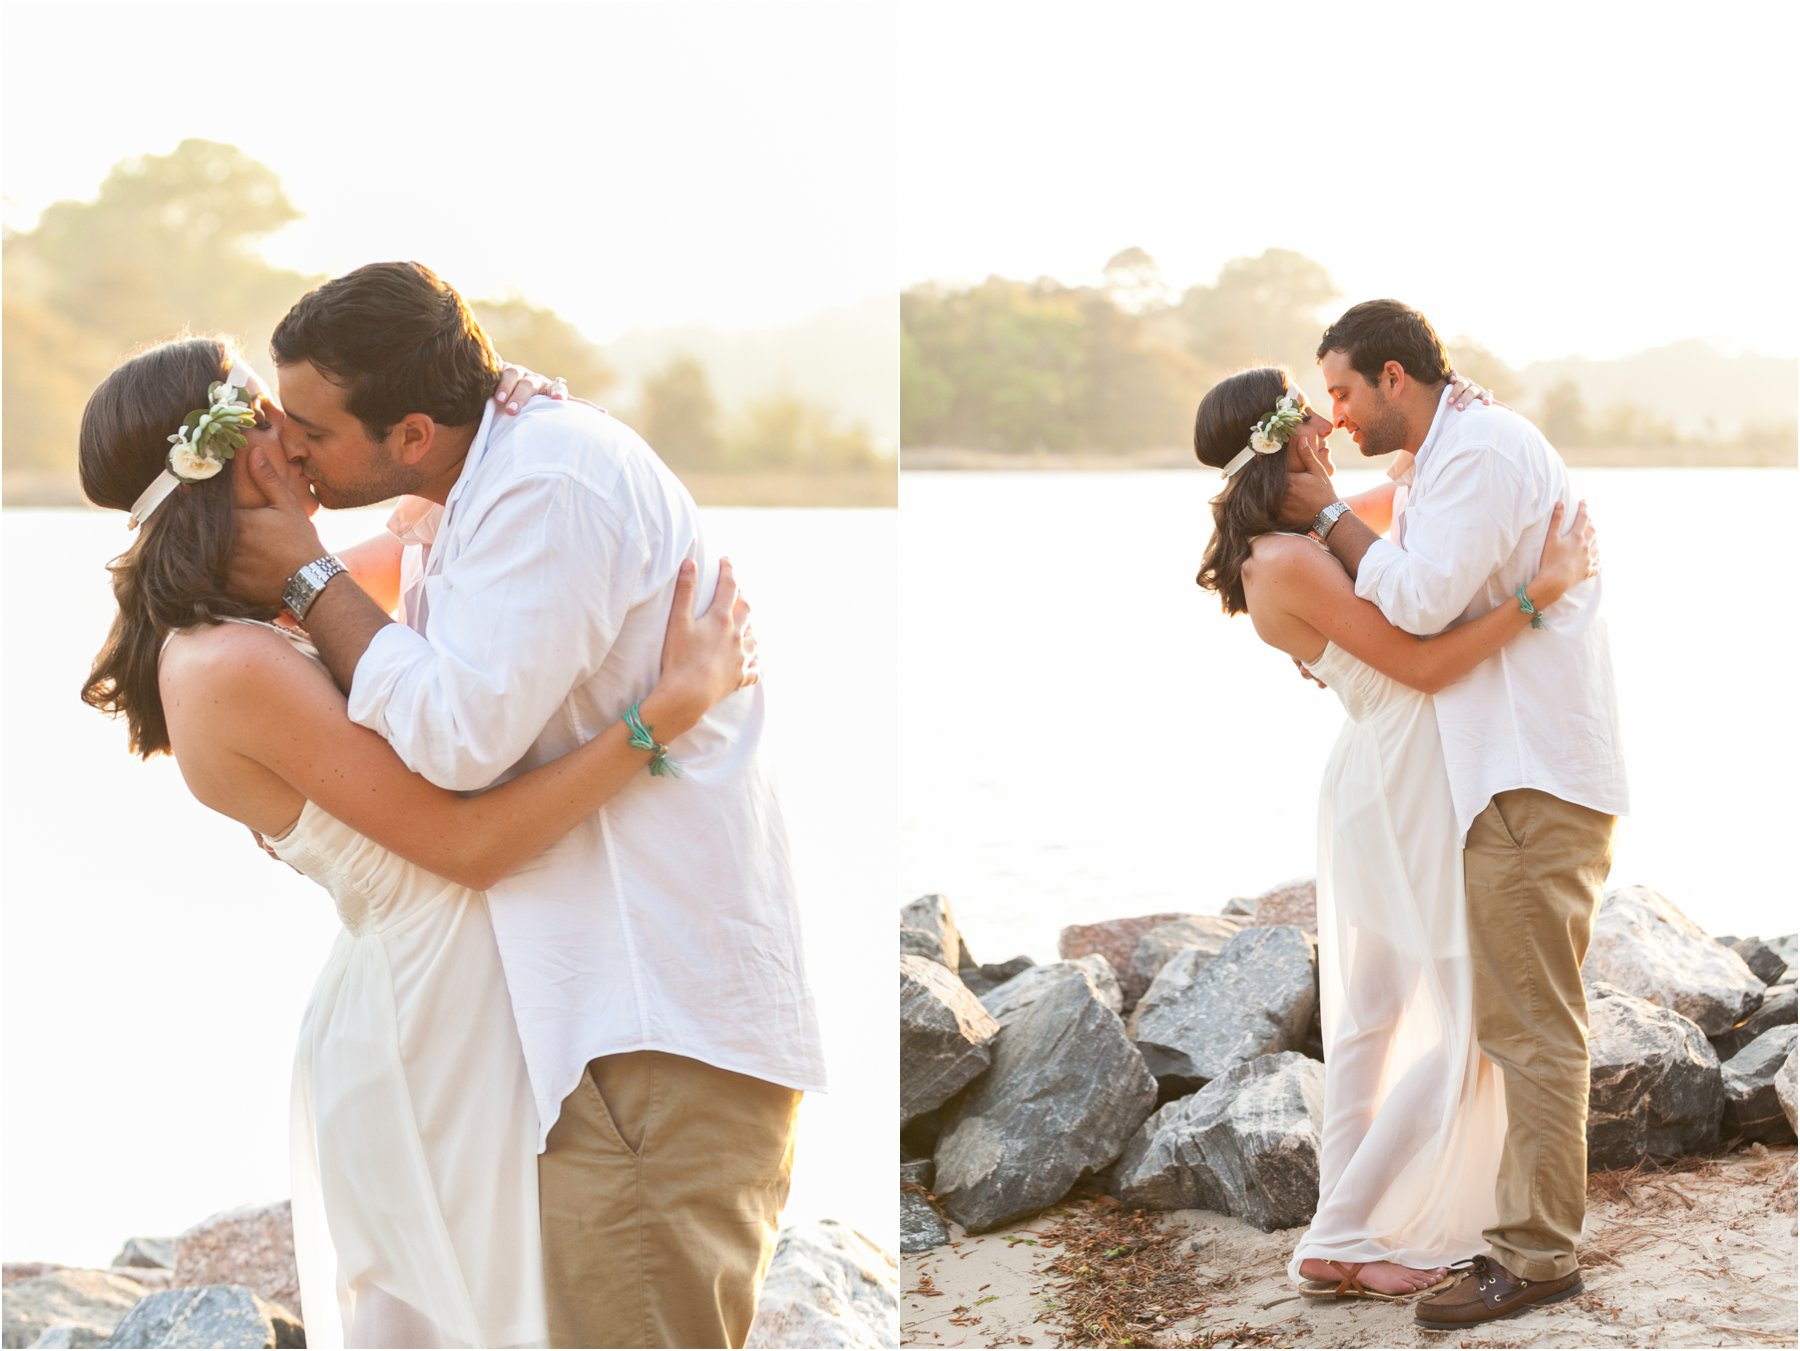 first_landing_wedding_boho_wedding_photography_virginia_Jessica_ryan_photography_0210